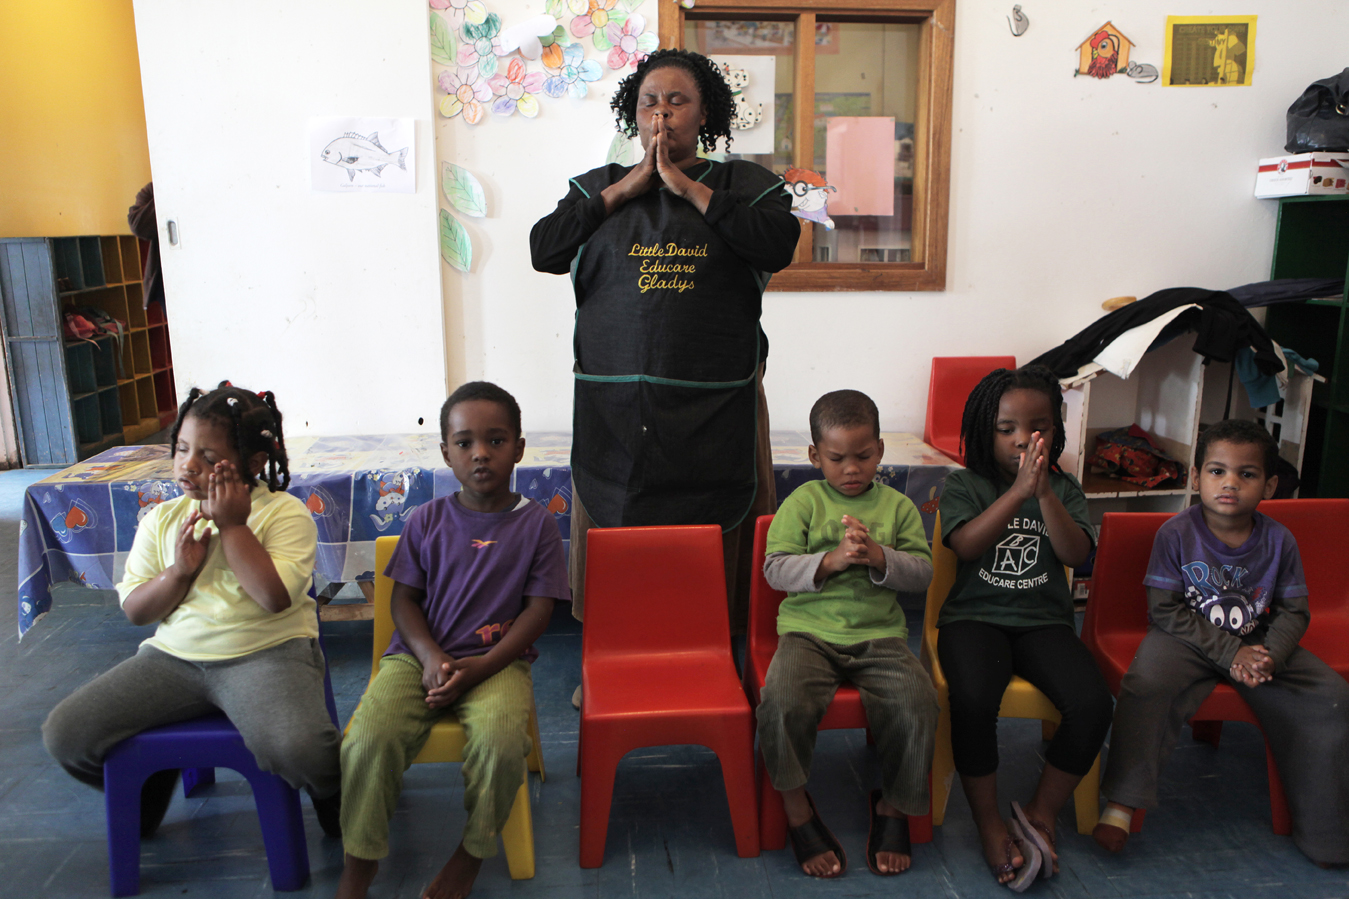 ECD teacher Gladys Hlatshwayo prays with the children before lunch at the Little David Educare Centre in Wentworth, a township on the southern side of Durban, in KwaZulu-Natal province. Over 92% of preschool children in KwaZulu-Natal attend unregistered ECD centres (crèches). Save the Children, operating in KZN for over 50 years, recognised the need to support crèches in the area with better management skills and access to learning materials, as well as running the crèche forums and supporting crèches with registration to become ECD centres.